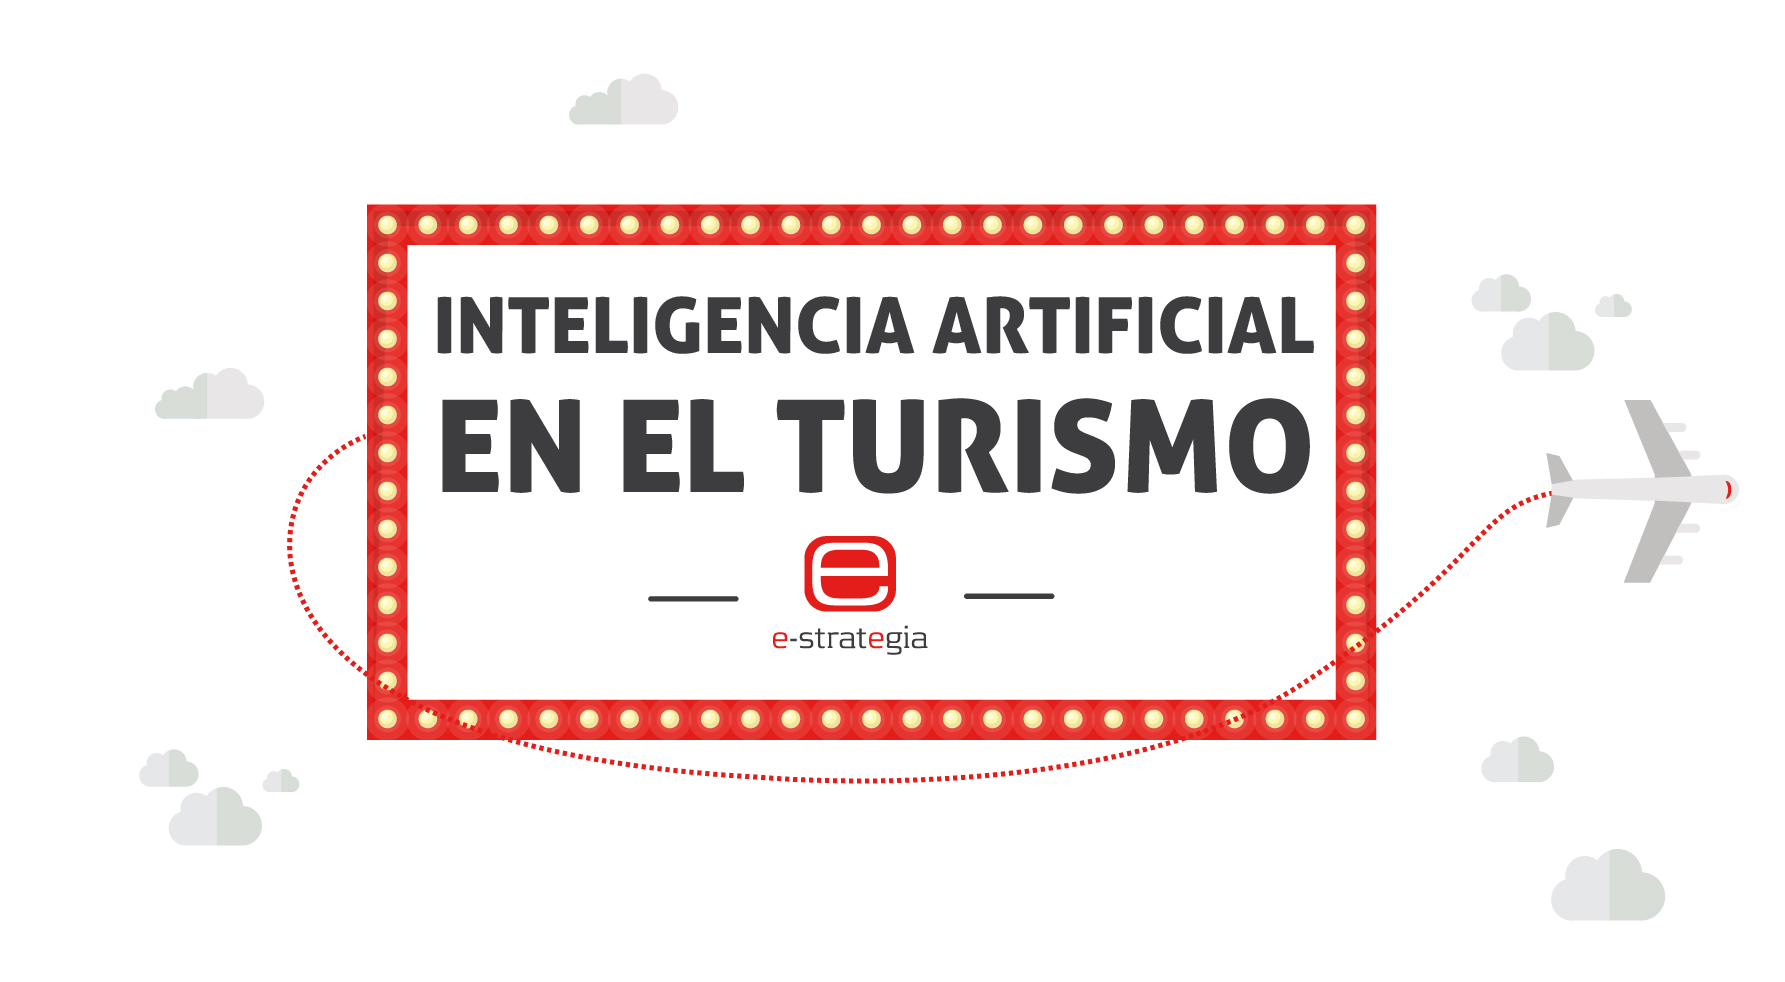 Inteligencia Artificial en el sector turismo, blog Transformación Digital